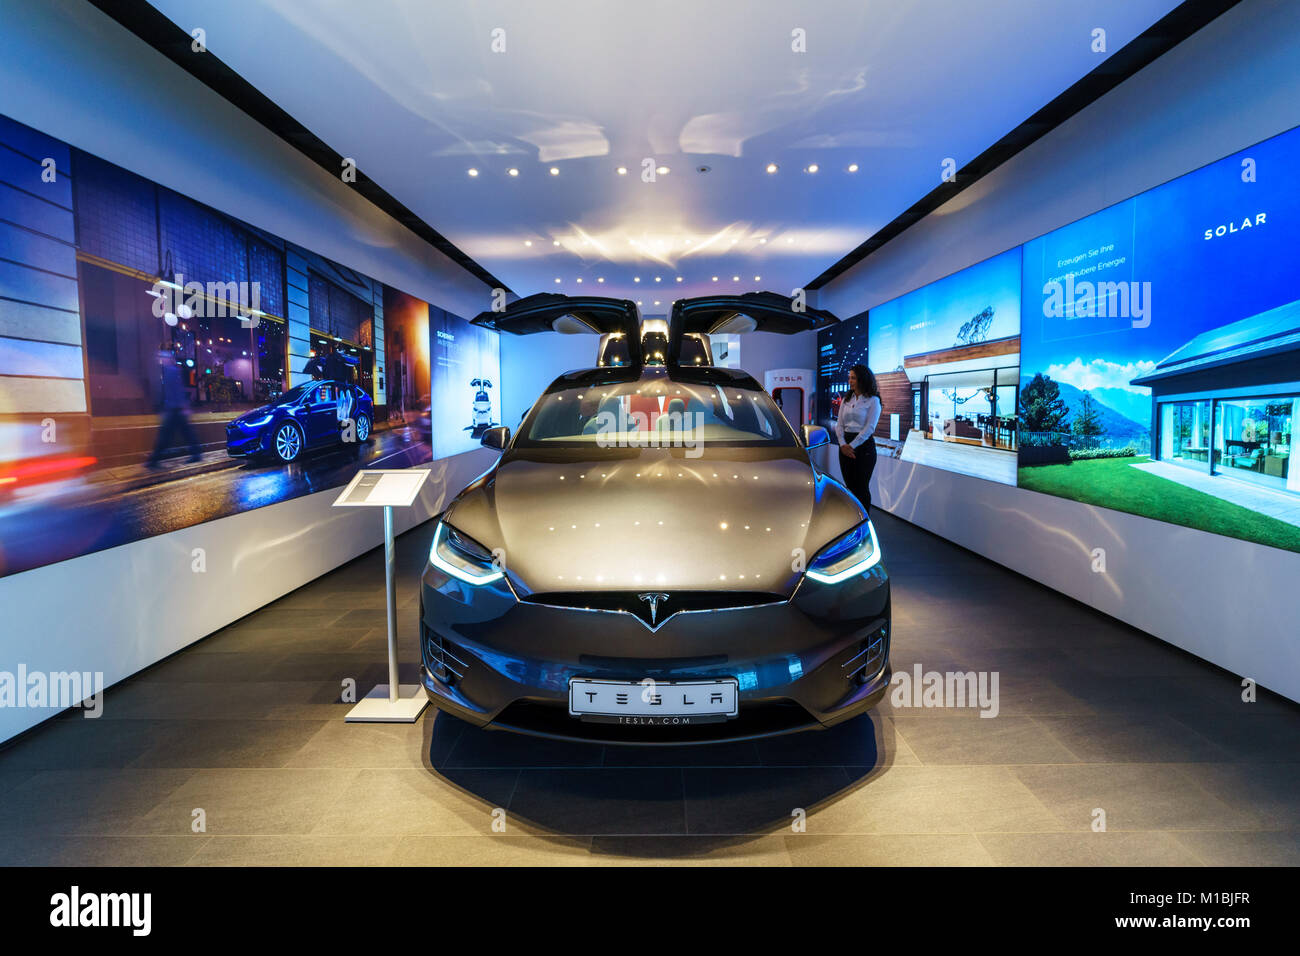 BERLIN - DECEMBER 21, 2017: Showroom. The full-sized, all-electric, luxury, crossover SUV Tesla Model X. Produced - Stock Image